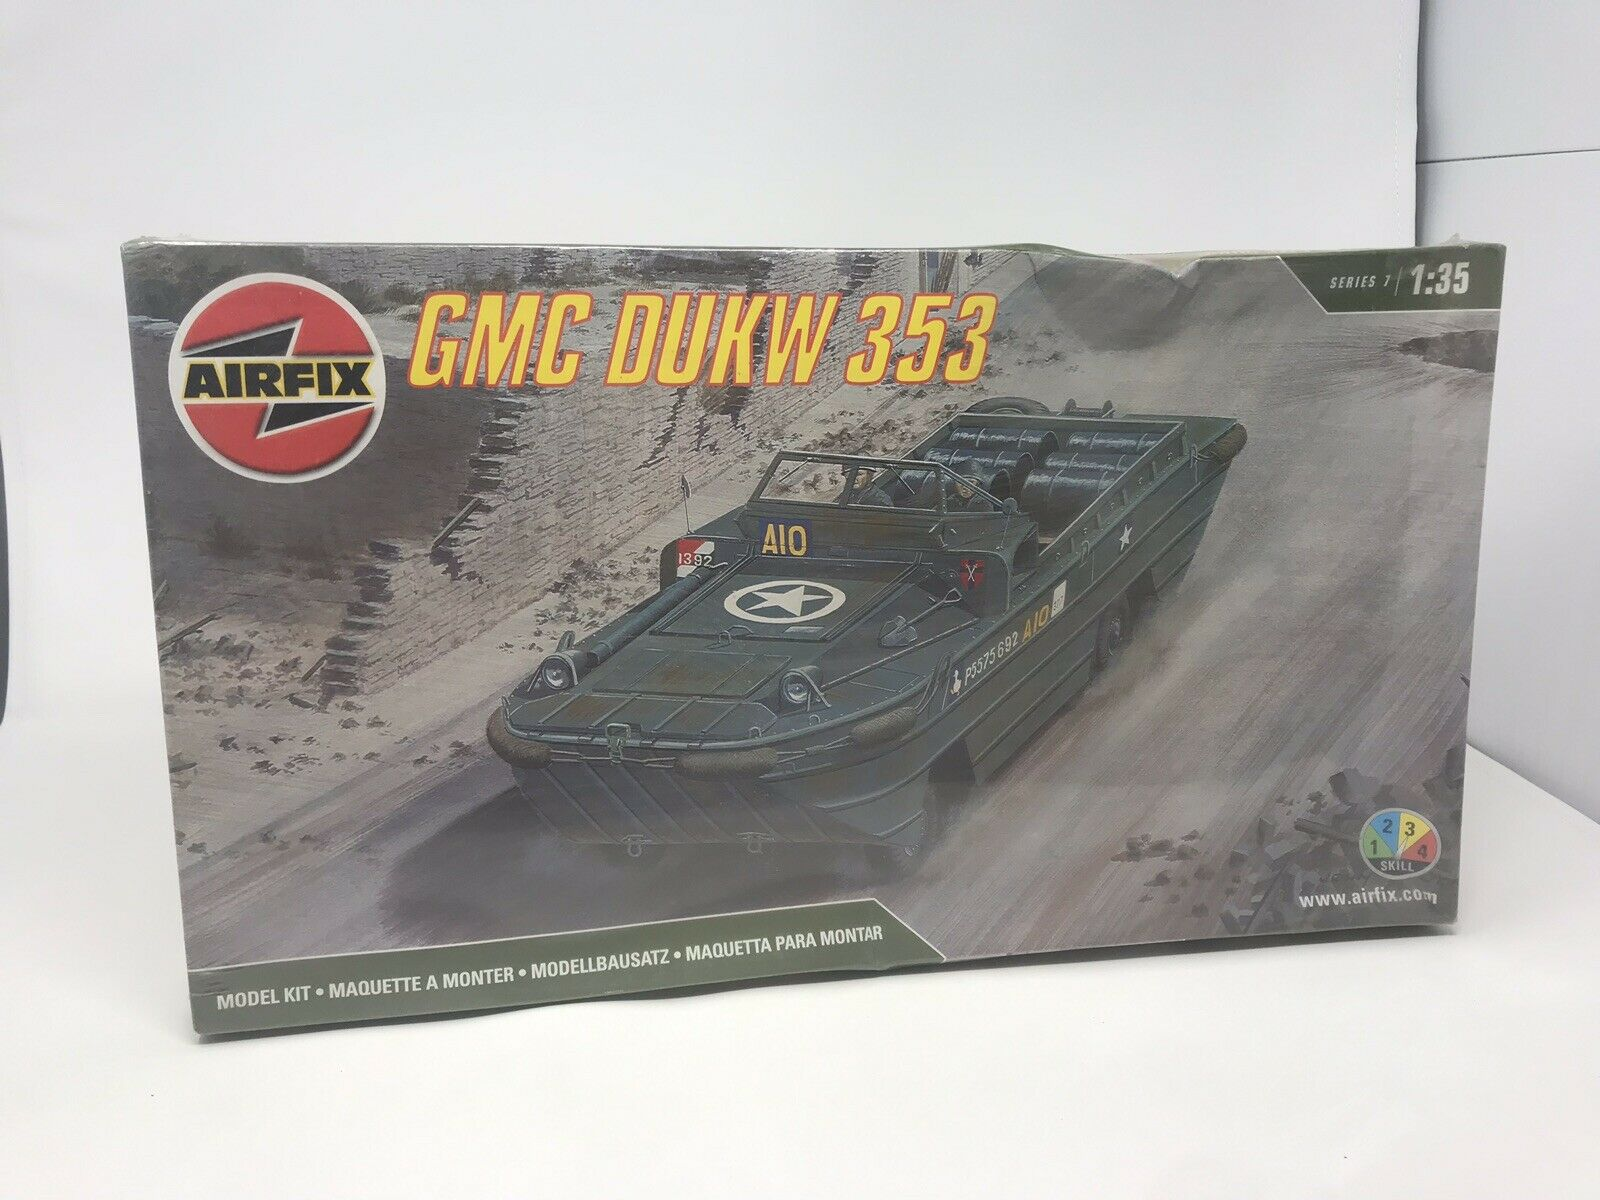 Airfix GMC DUKW 353 Amphibian Military Model Kit 07362